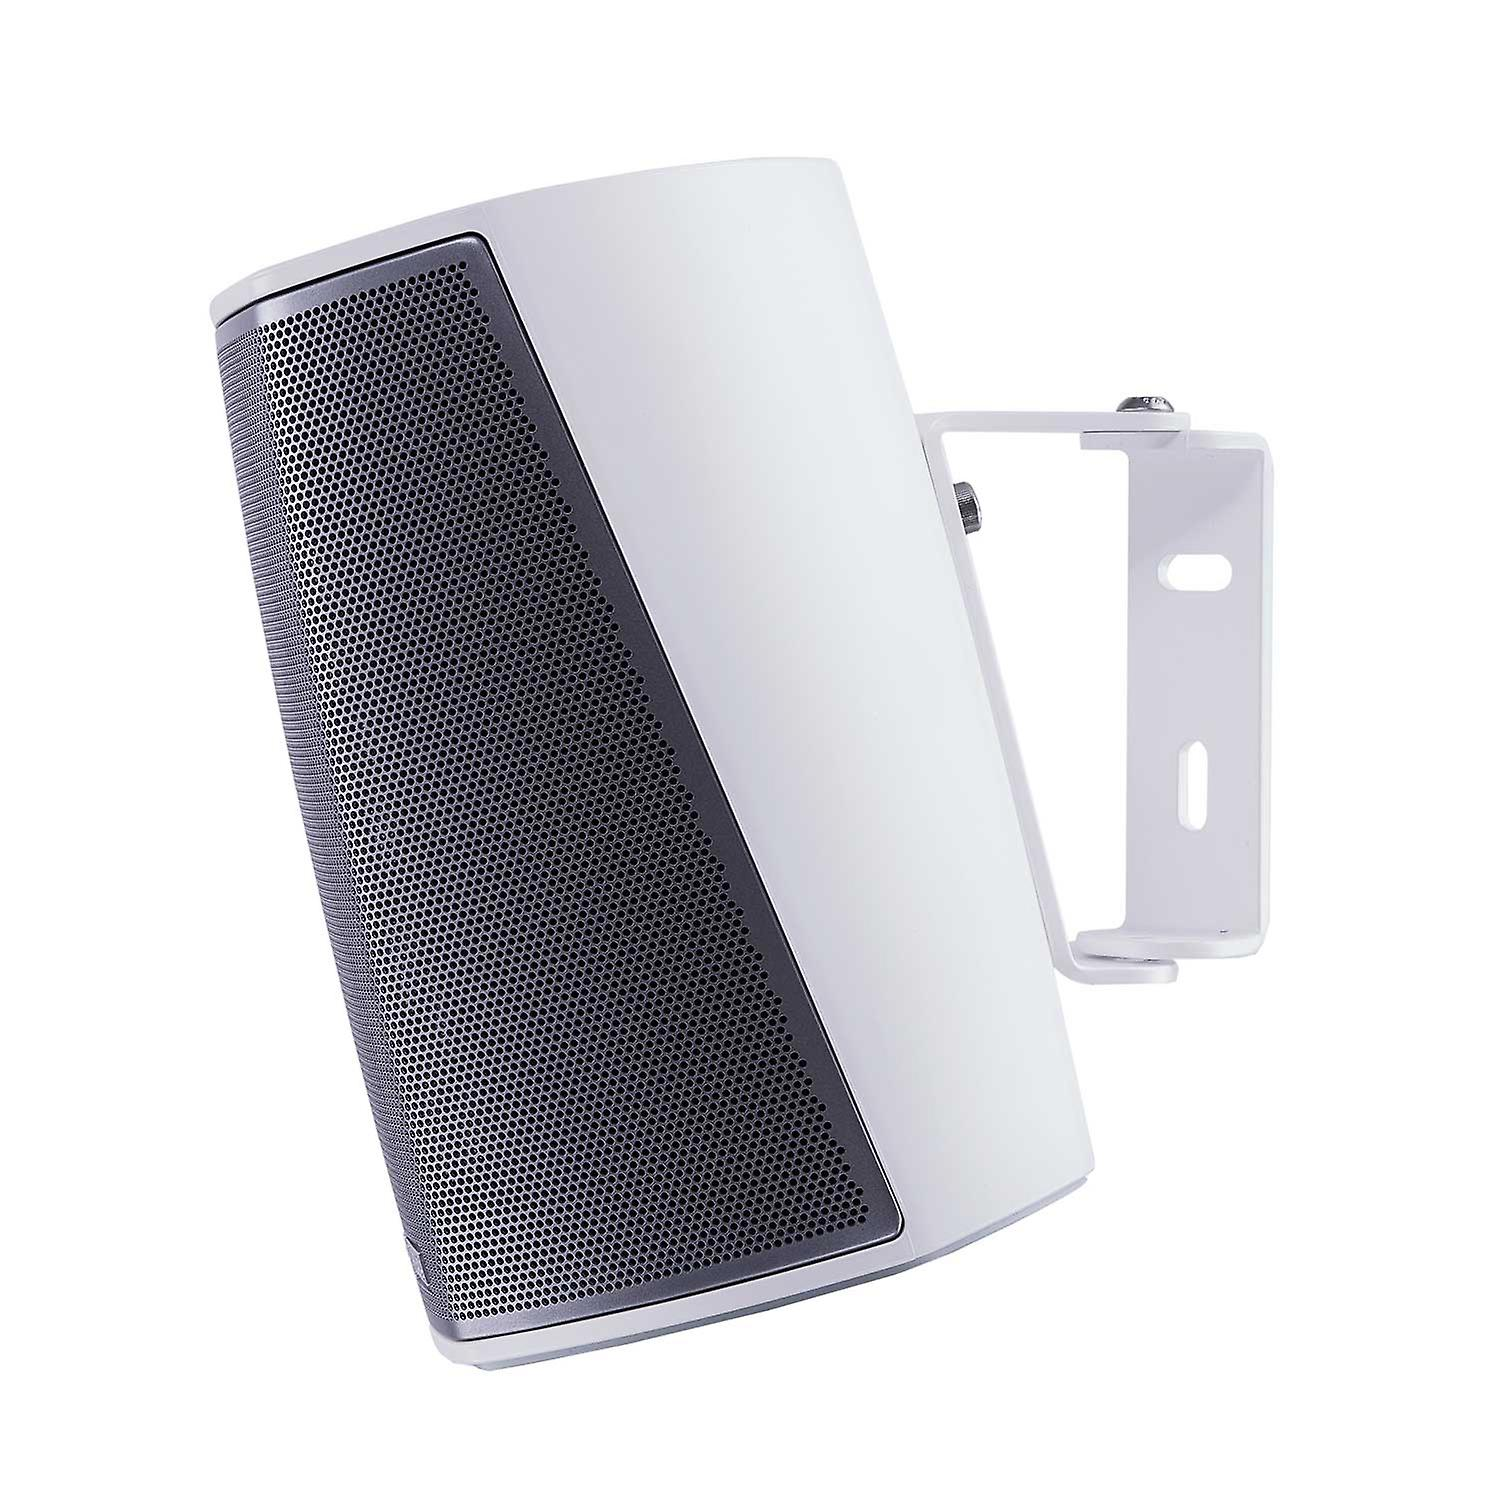 Vebos wall mount Denon Heos 1 white 15 degrees